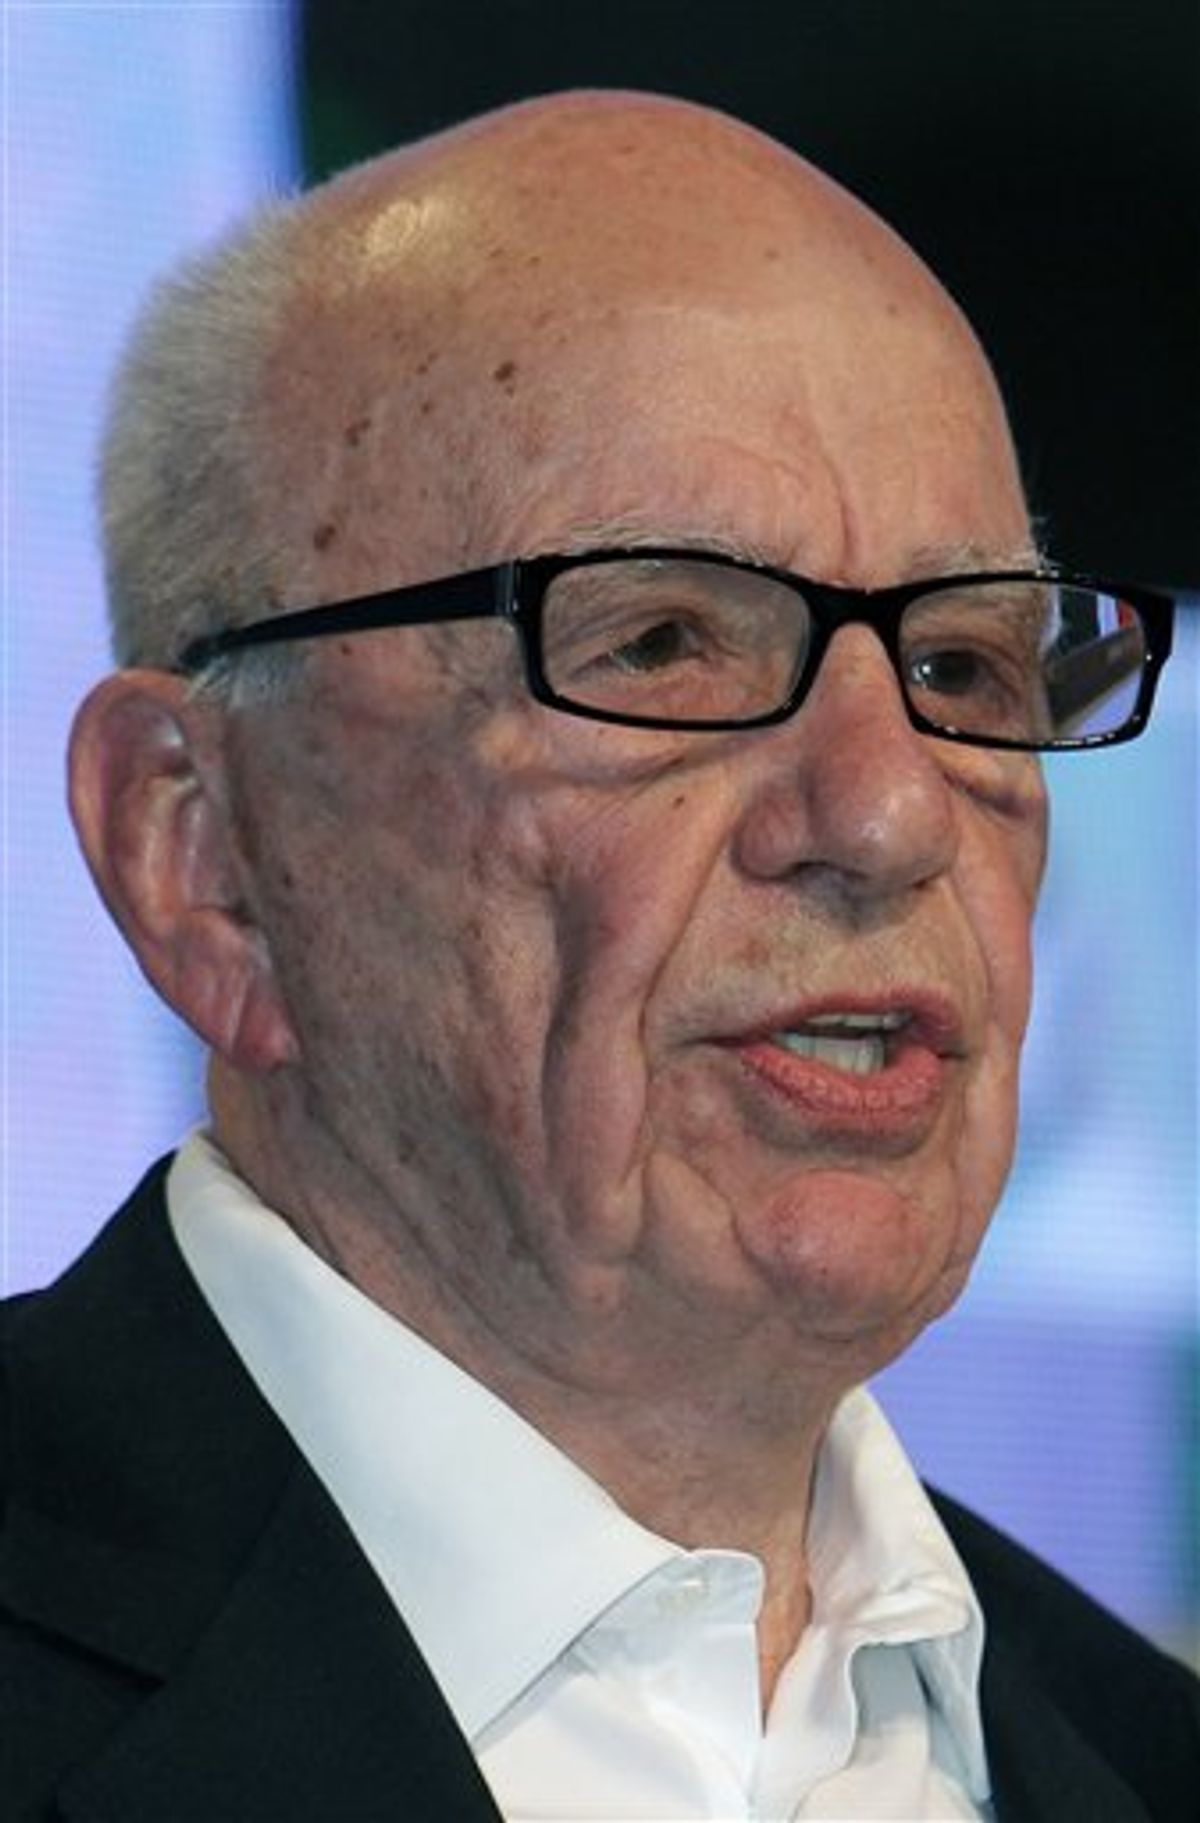 FILE - In this May 24, 2011 file photo, media magnate Rupert Murdoch speaks during the e-G8 conference, gathering Internet and information technologies leaders and experts, in Paris. Britain's prime minister demanded inquiries into a burgeoning phone hacking scandal as allegations mounted Wednesday, July 6, 2011, that a tabloid eavesdropped on missing schoolgirls and the families of terrorist bombing victims as well as celebrities and royals. The scandal poses a threat to Murdoch's global media empire, and is causing a growing number of companies to pull their ads from the News of the World tabloid in disgust. In addition, calls are mounting for Rebekah Brooks, Murdoch's top executive in Britain, to step down. (AP Photo/Bob Edme, File)  (AP)